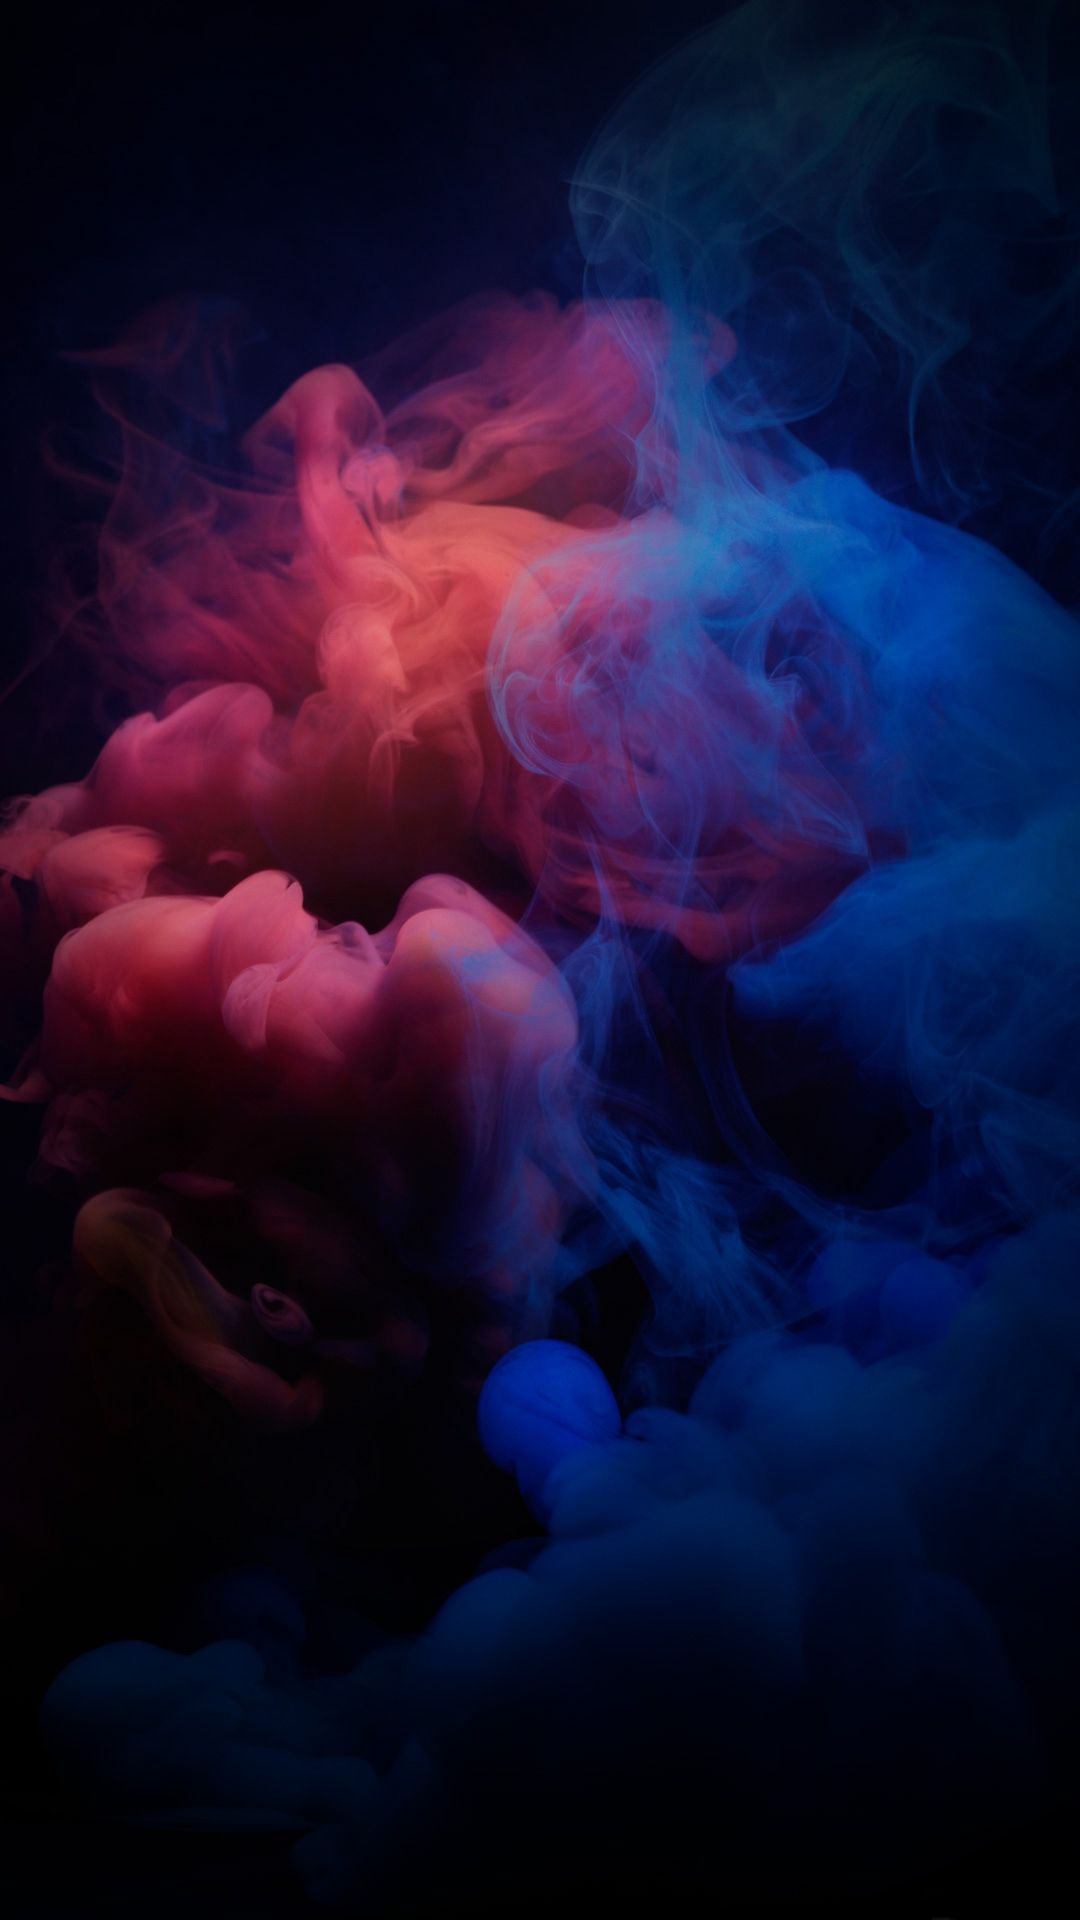 Smoke Red Blue Dark Wallpaper 1080x1920 Smoke Wallpaper Huawei Wallpapers Blue Wallpaper Iphone